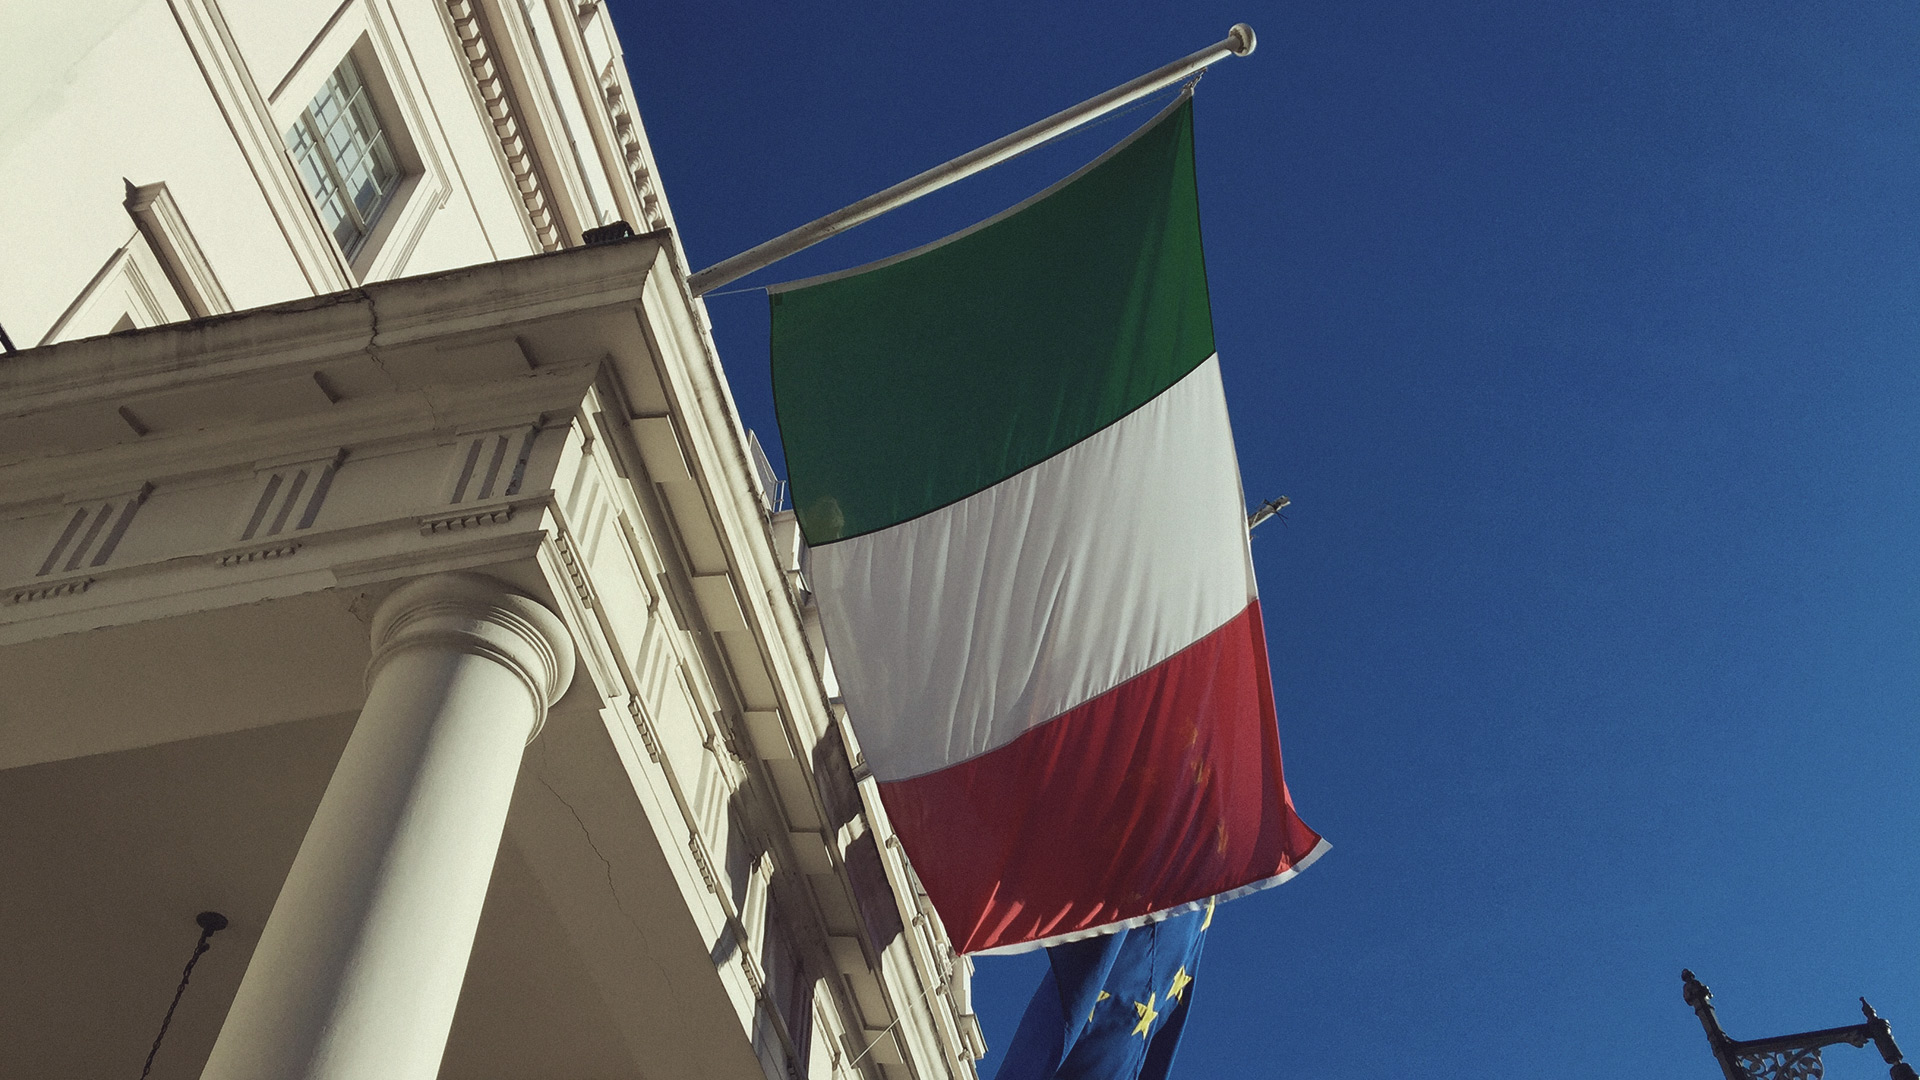 Italian securities regulator head says crypto could negatively affect market